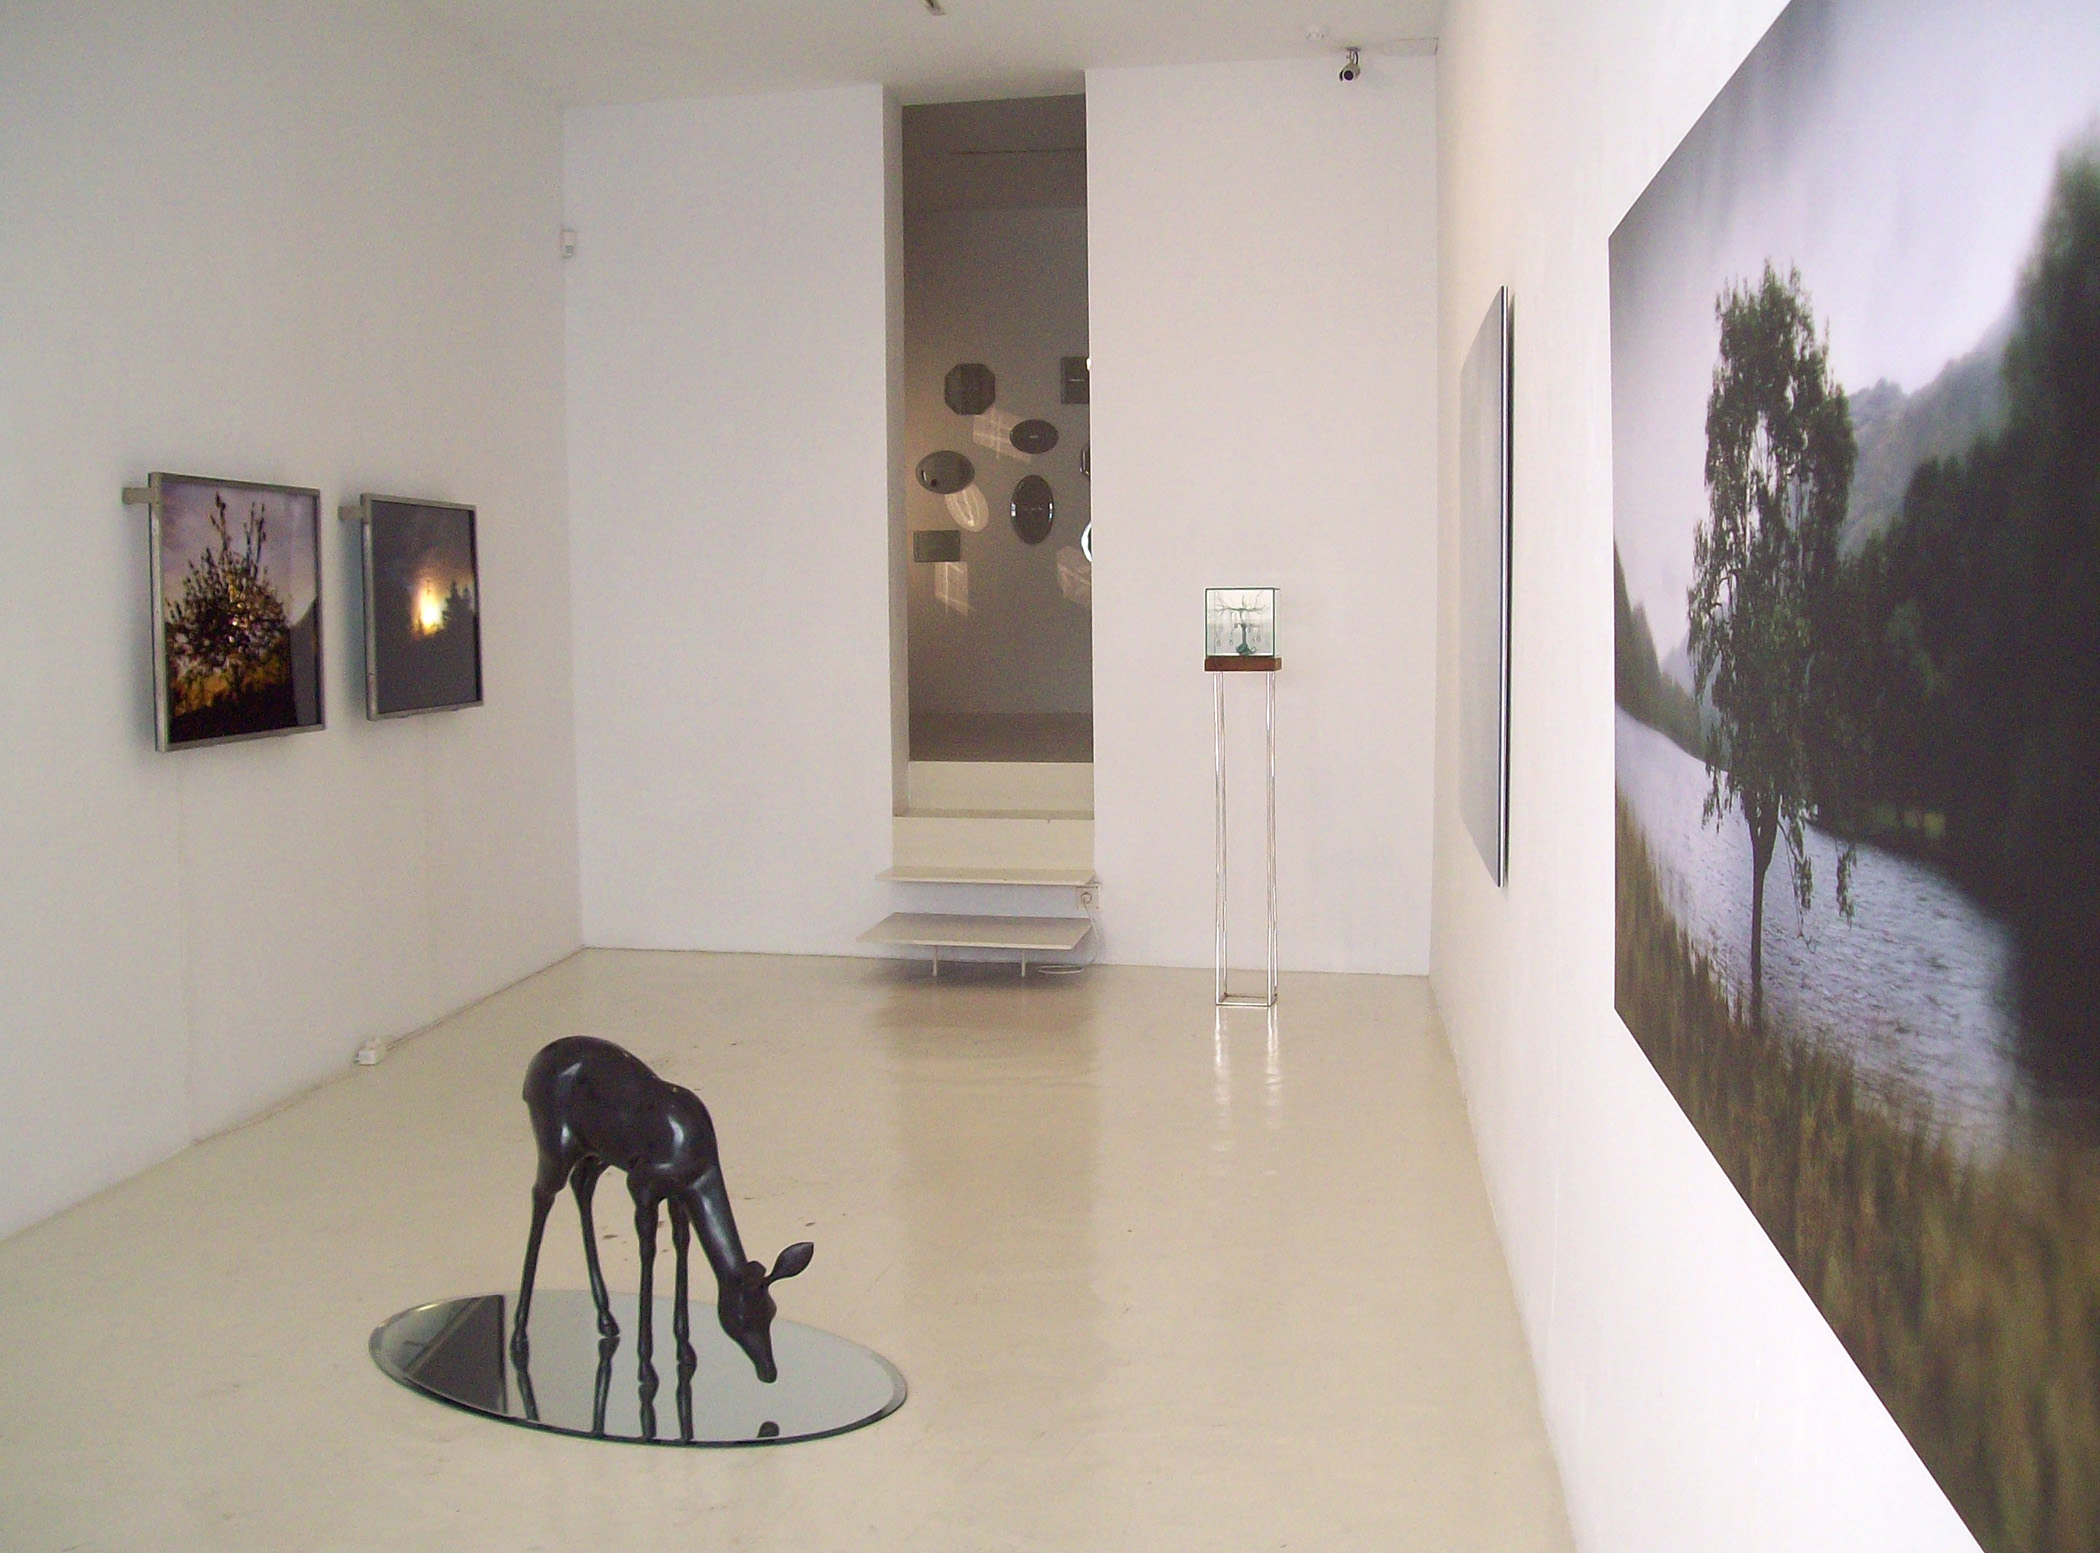 Exhibition view from Mayte Vieta, 2011